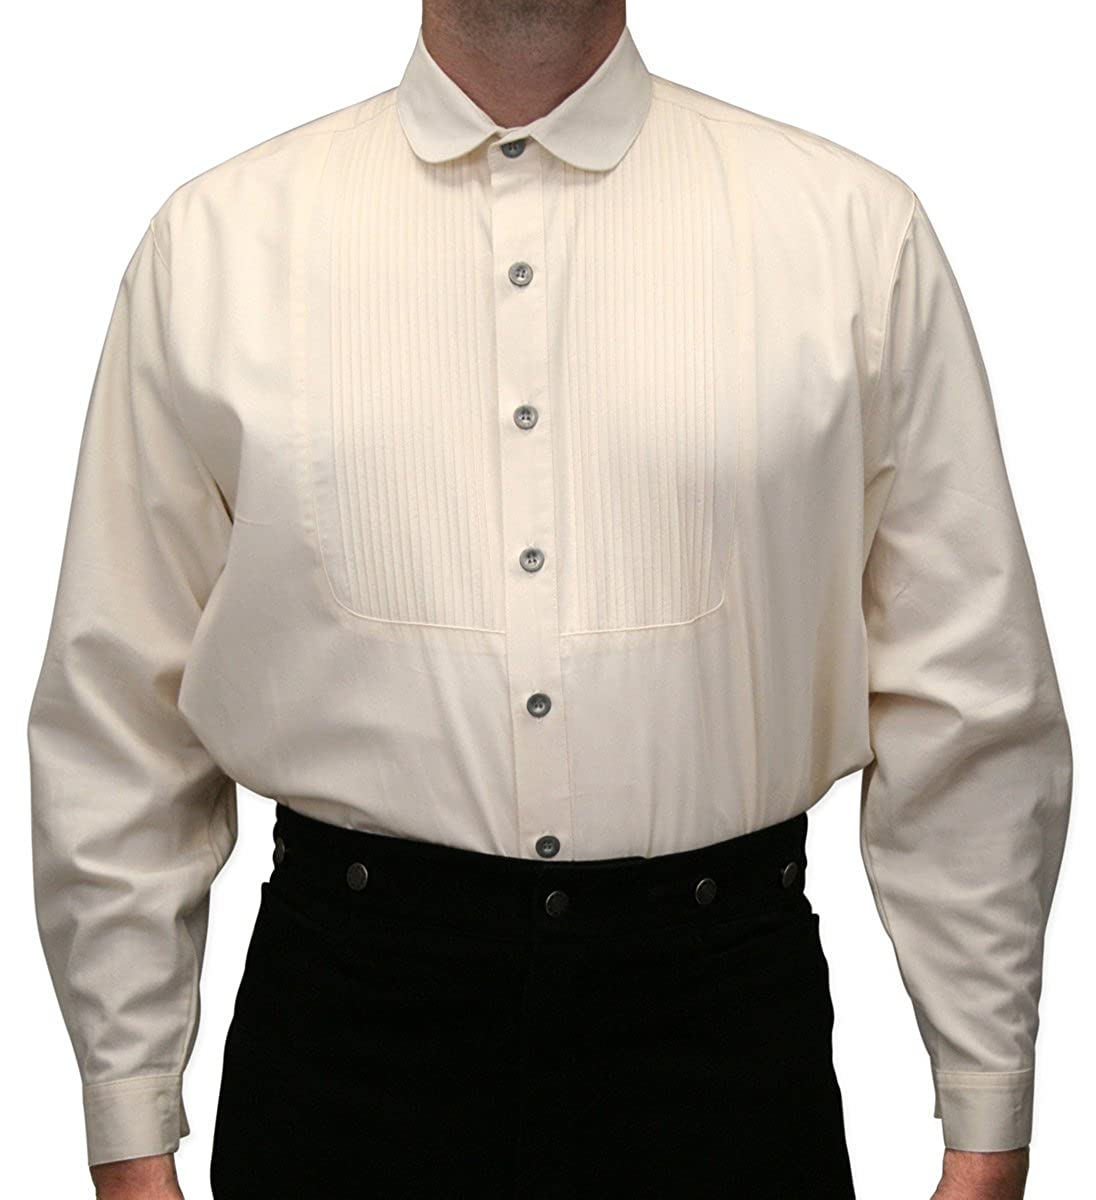 Edwardian Men's Shirts & Sweaters Mens Sinclair Edwardian Club Collar Dress Shirt $59.95 AT vintagedancer.com